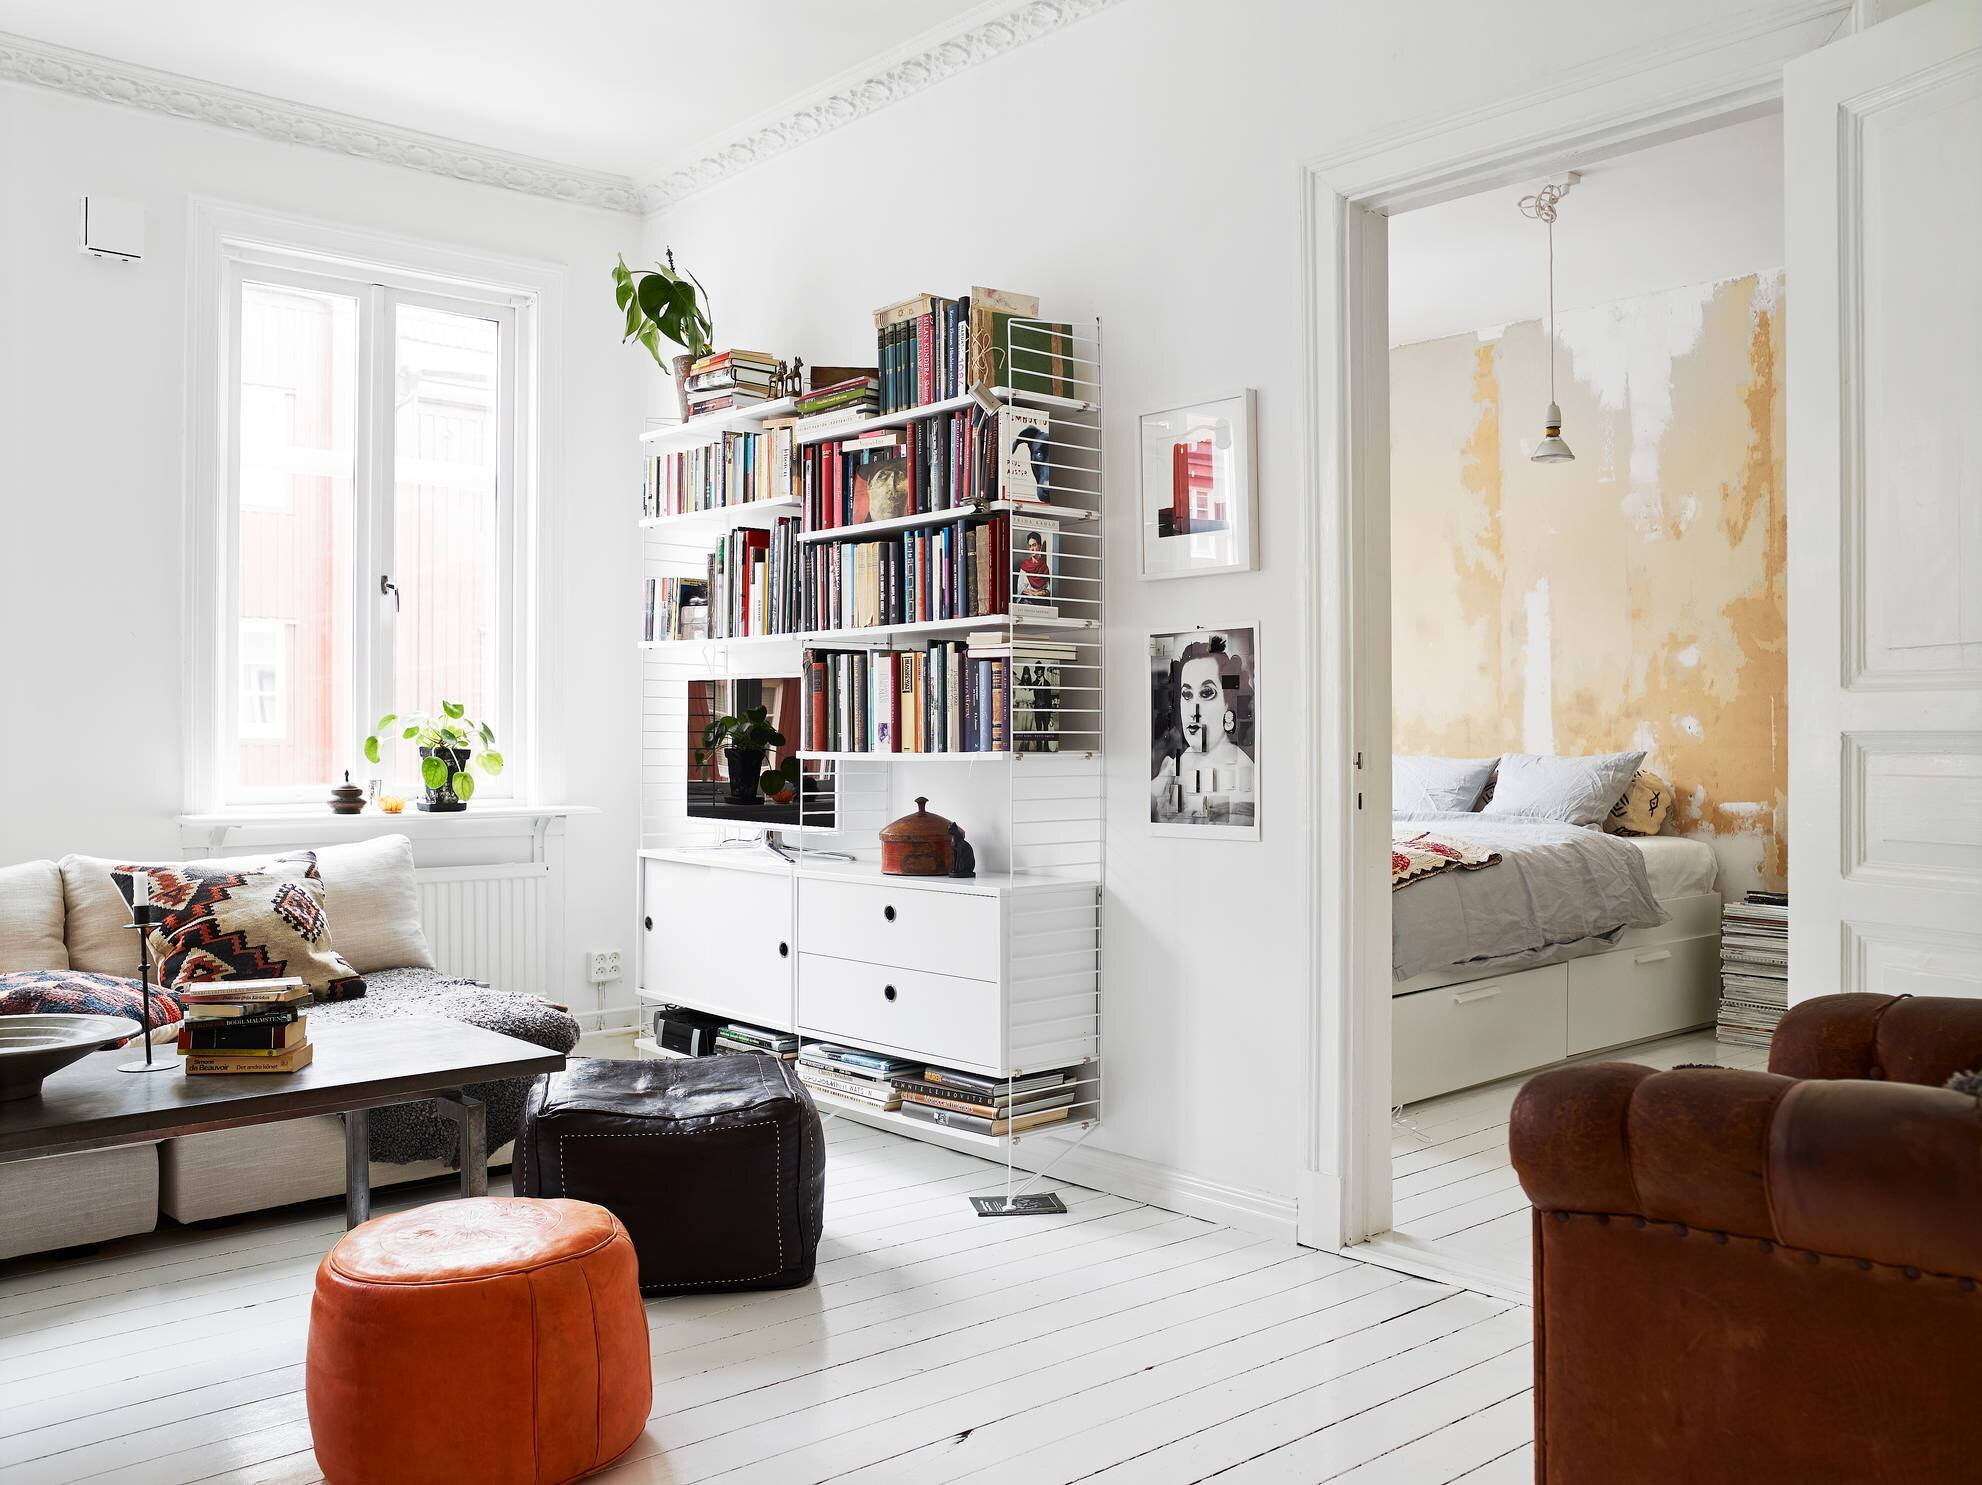 Göteborg Apartment Focuses on Comfort & Style